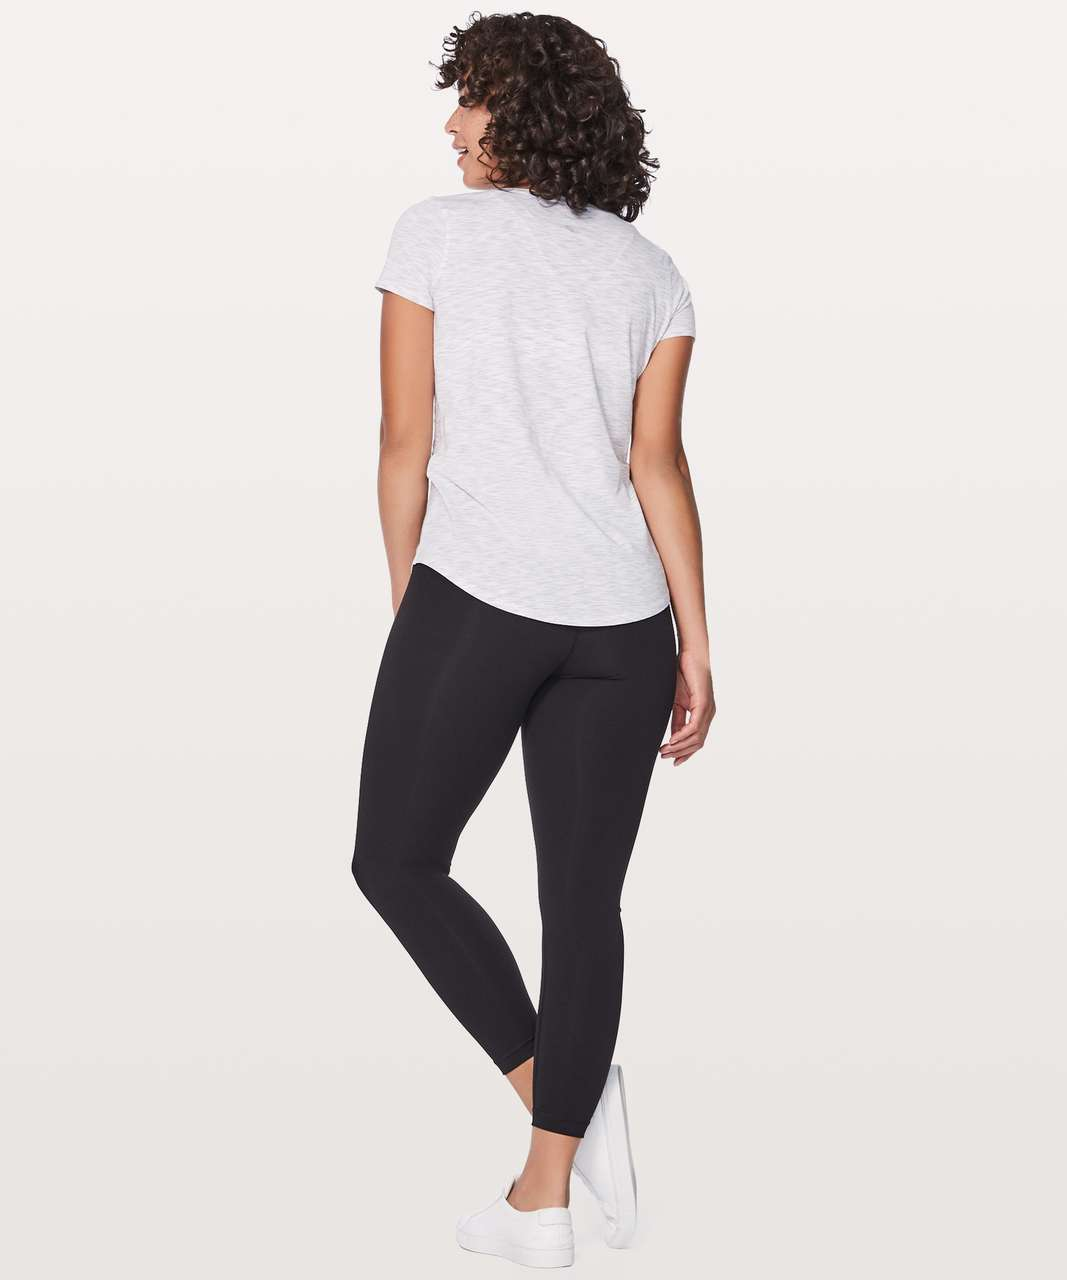 Lululemon Love Tee V - 3 Colour Space Dye Ice Grey Alpine White (First Release)